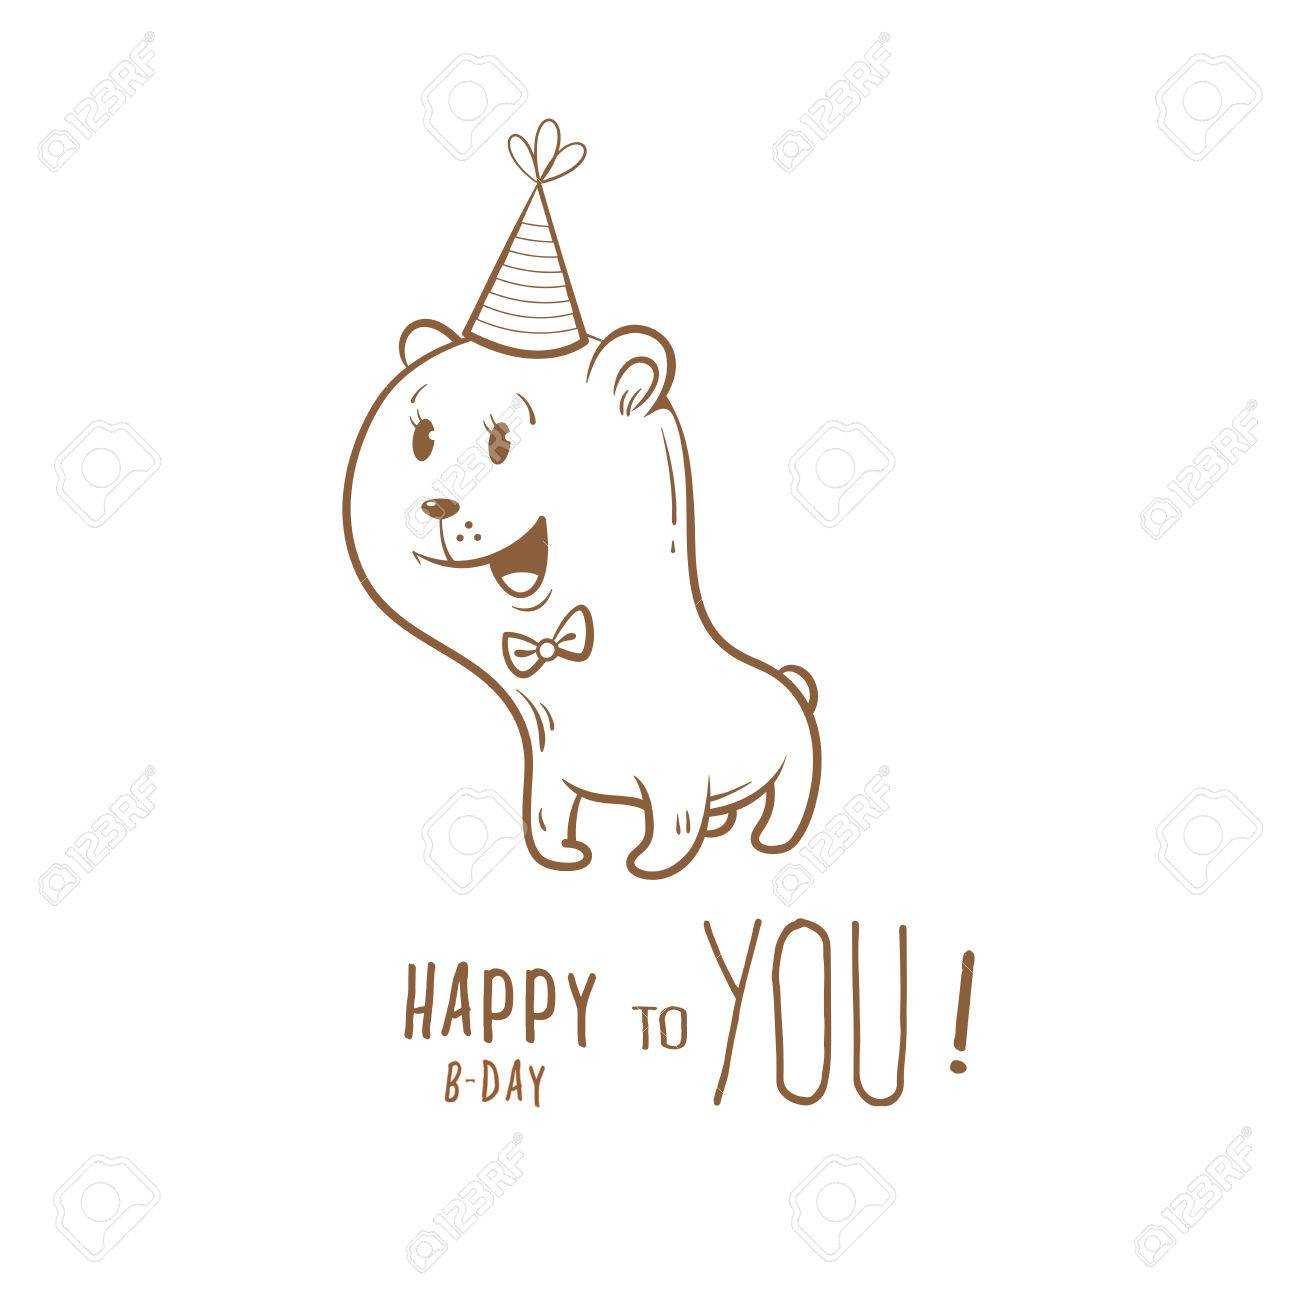 Birthday Card With Cute Cartoon Bear In Party Hat Little Funny Animal Childrens Illustration